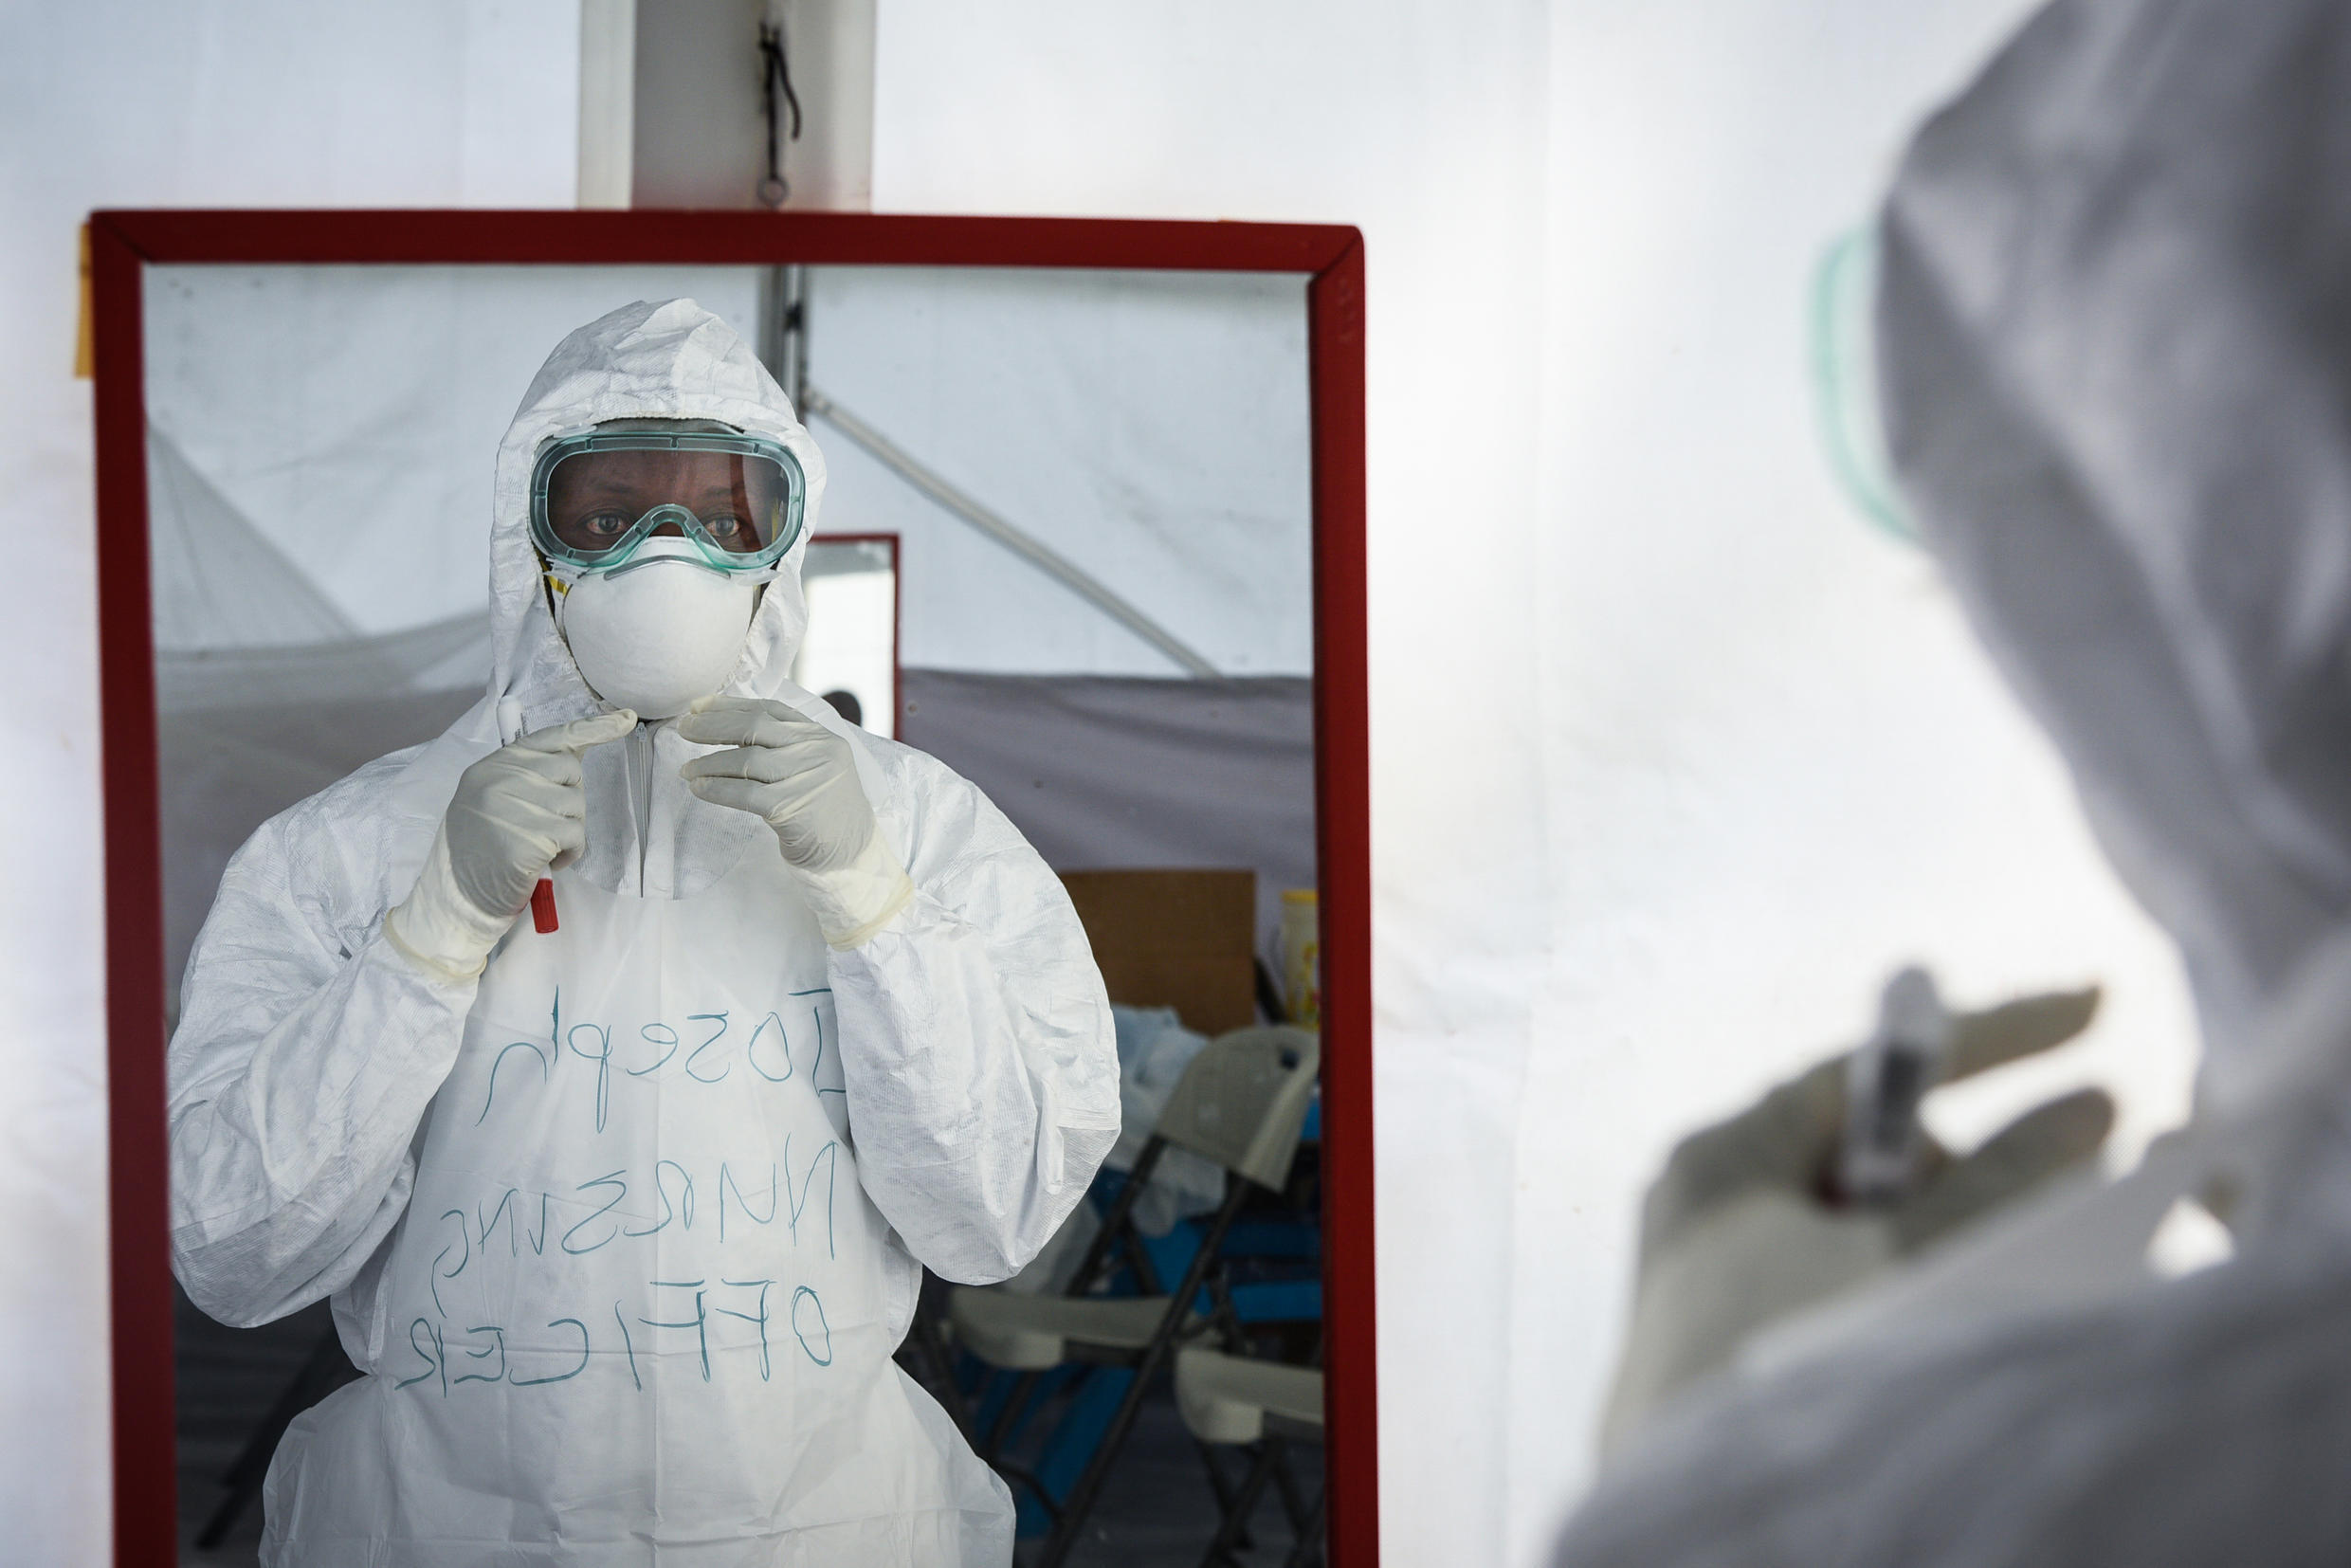 Ebola workers in eastern DR Congo bore the brunt of militia attacks that hampered efforts to roll back the disease.